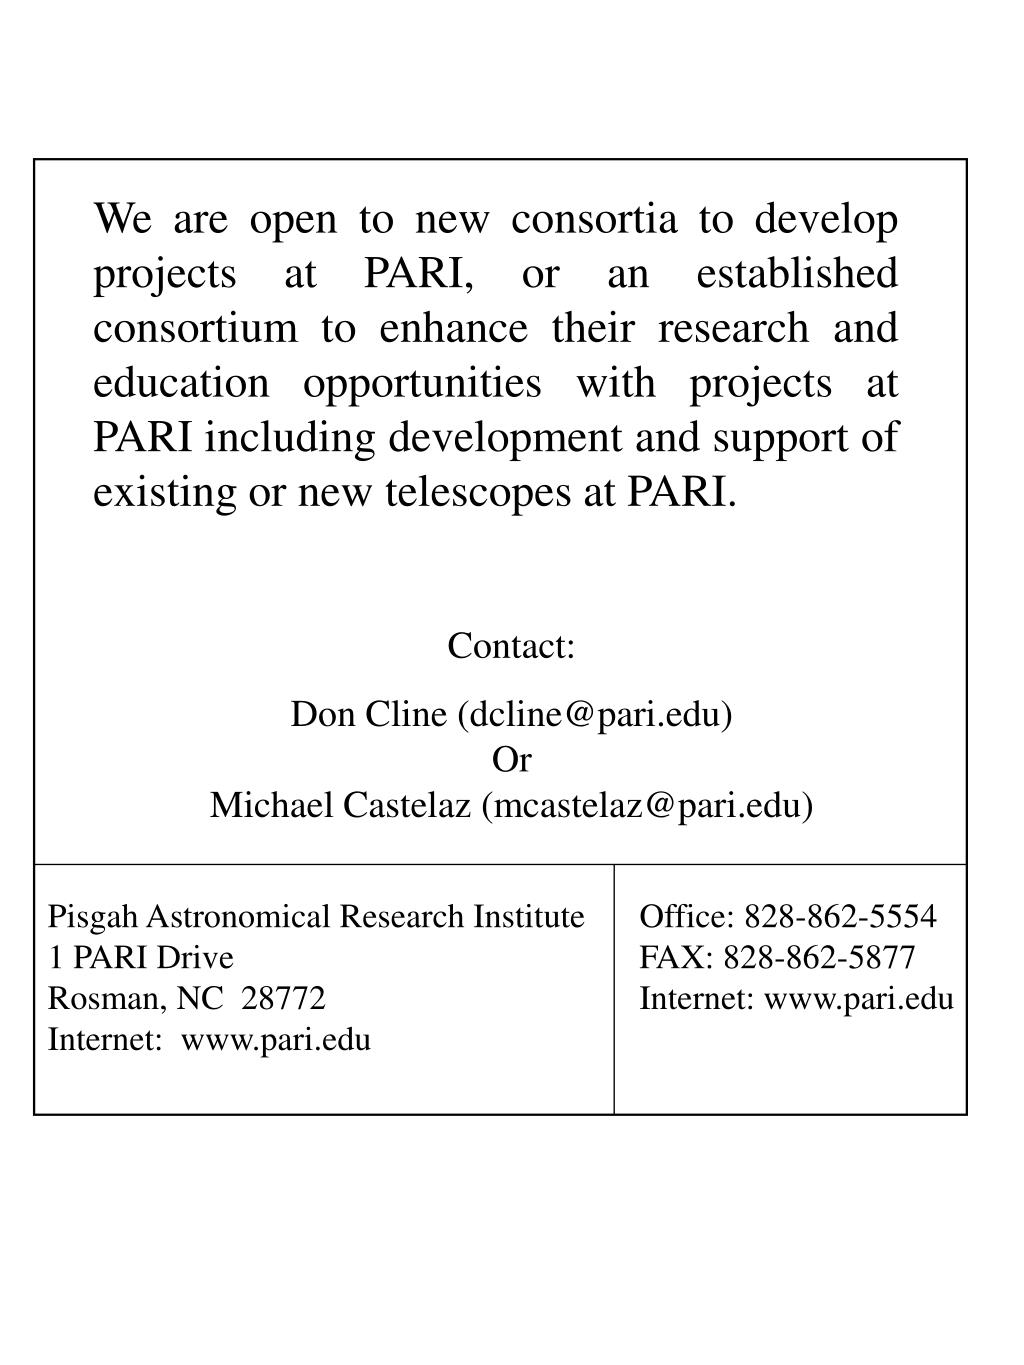 We are open to new consortia to develop projects at PARI, or an established consortium to enhance their research and education opportunities with projects at PARI including development and support of existing or new telescopes at PARI.